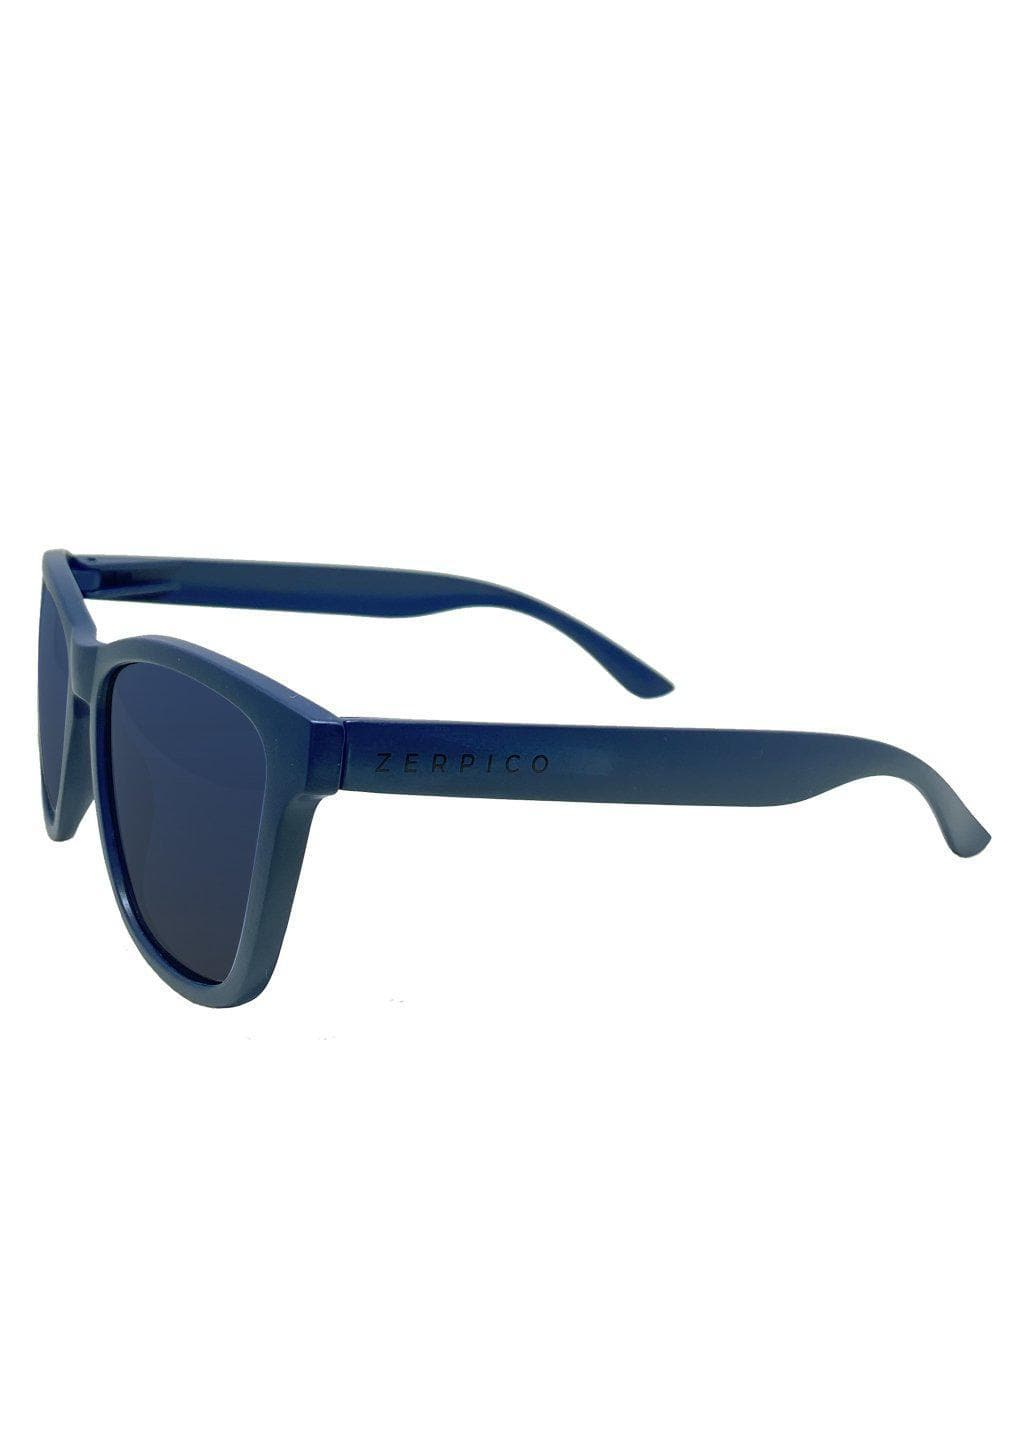 Our Mood V2 is an improved version of our last wayfarers. Plastic body for great quality and durabilty. This is Navy with a matte blue frame and gradient blue lenses. Studio shoot from the side.